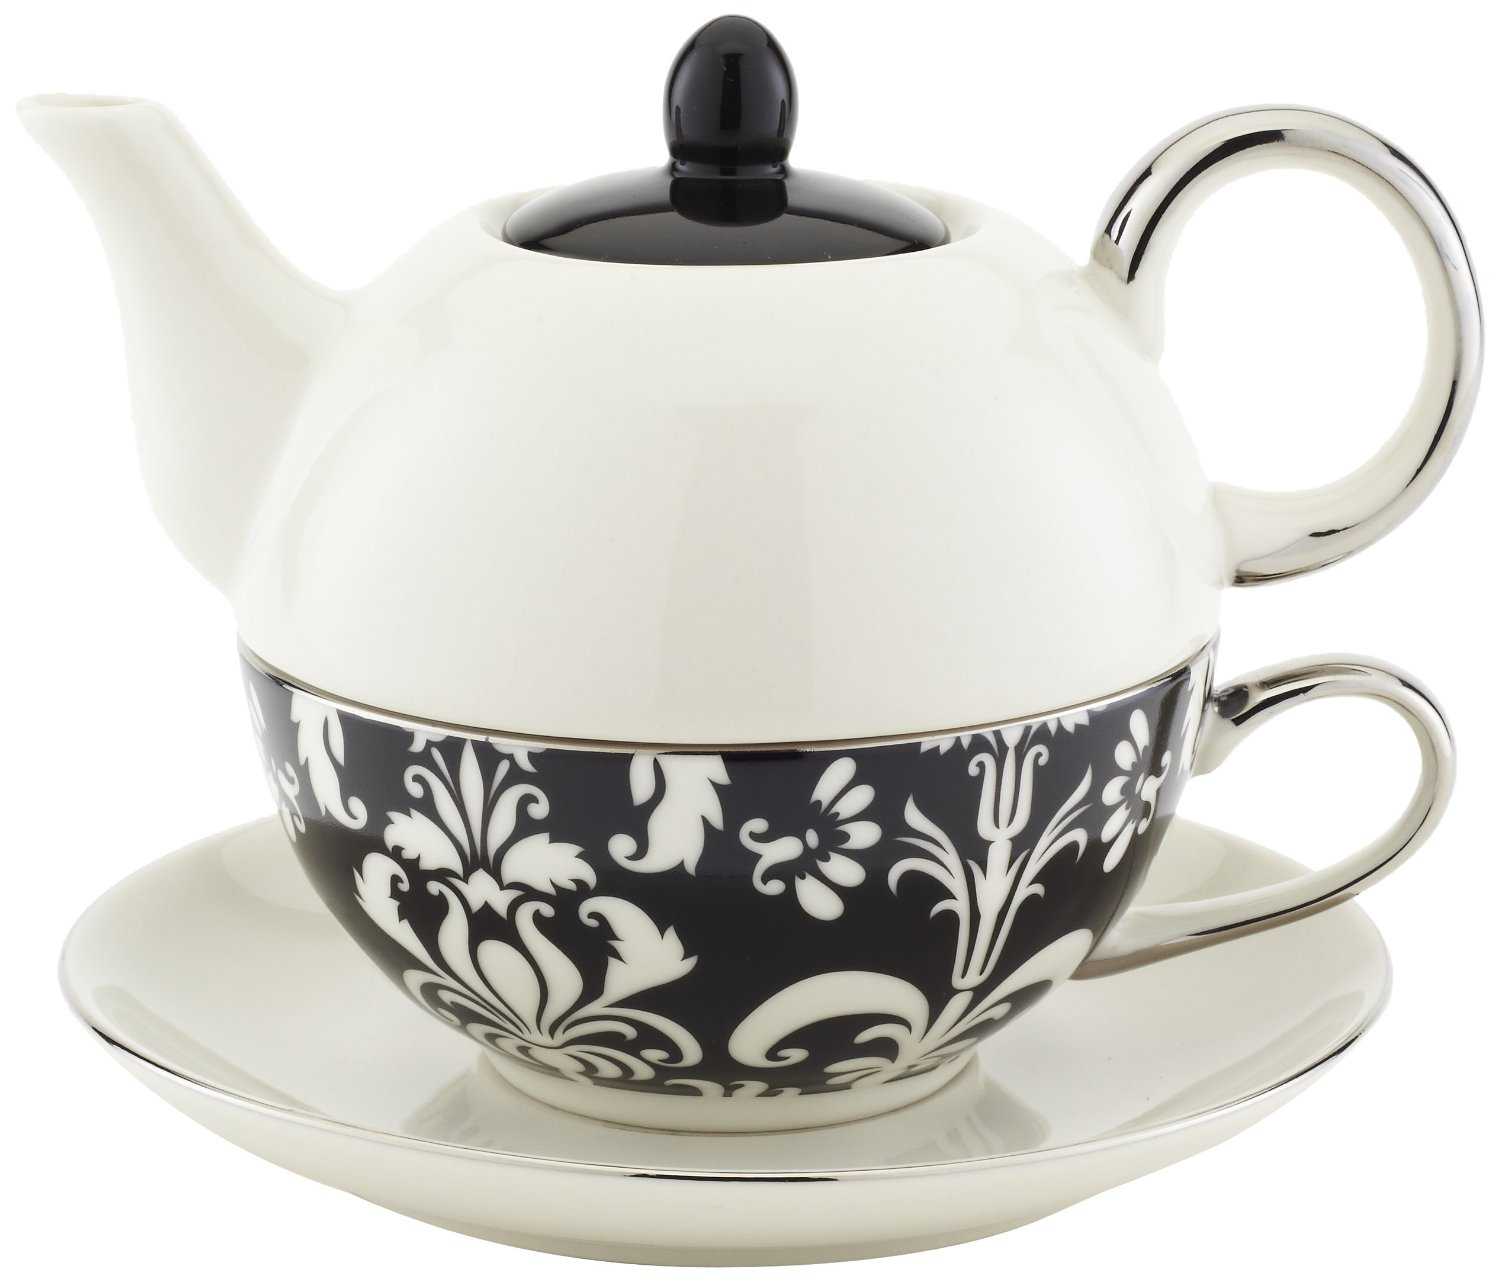 Classic Coffee & Tea Chic Tea Set for One  in White & Black Damask Design